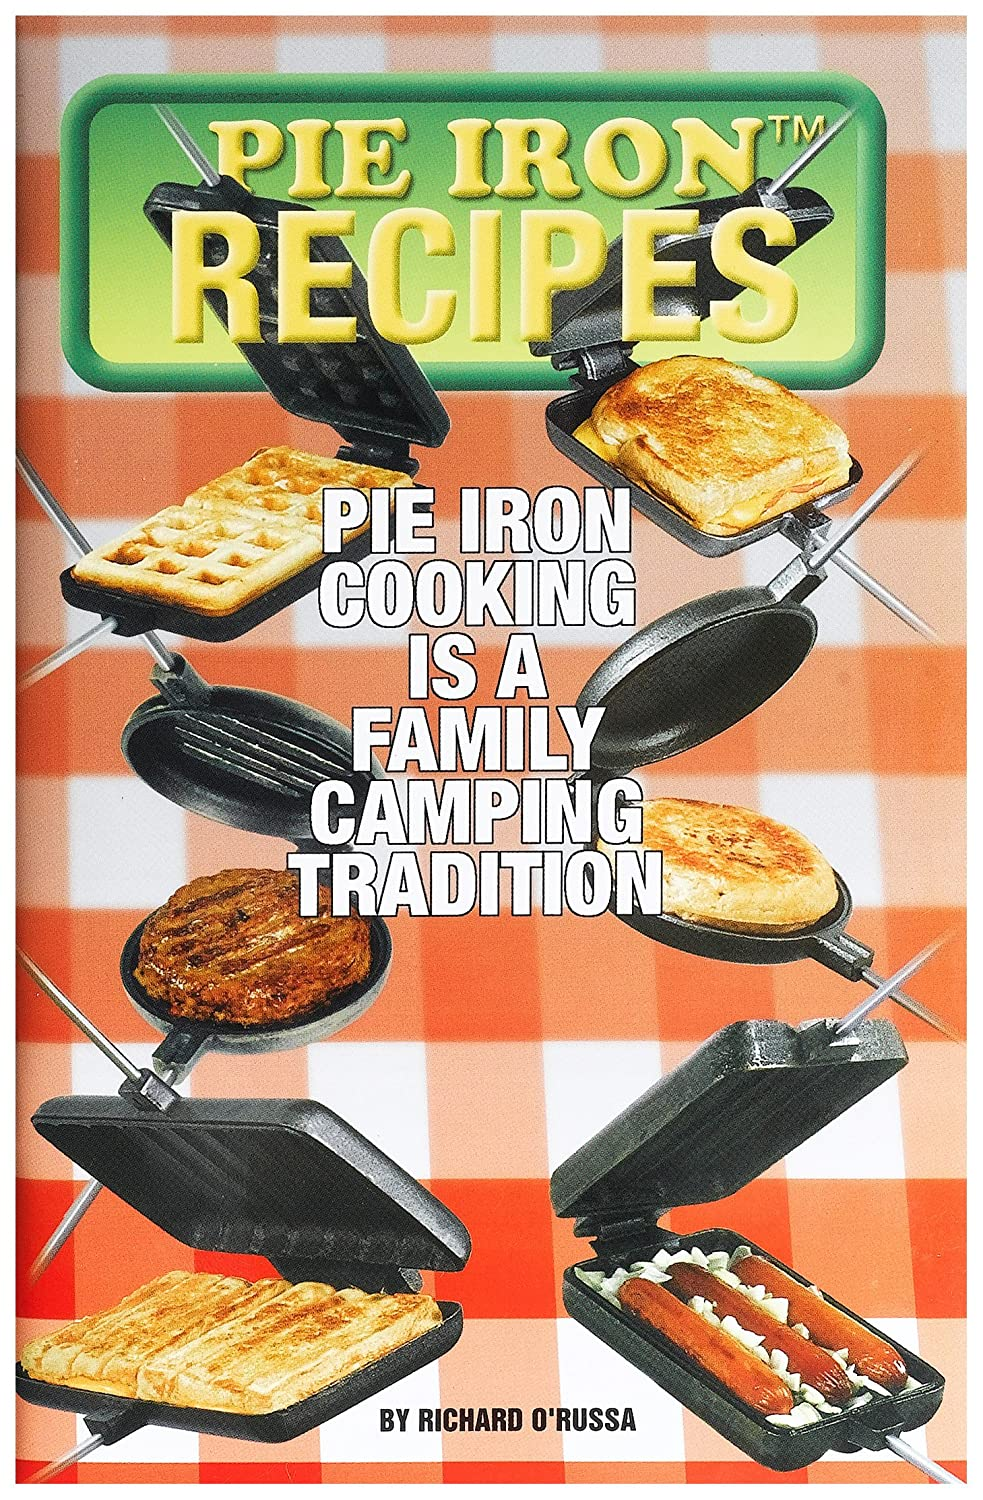 Pie Iron Recipes Book Rome Industries 2000